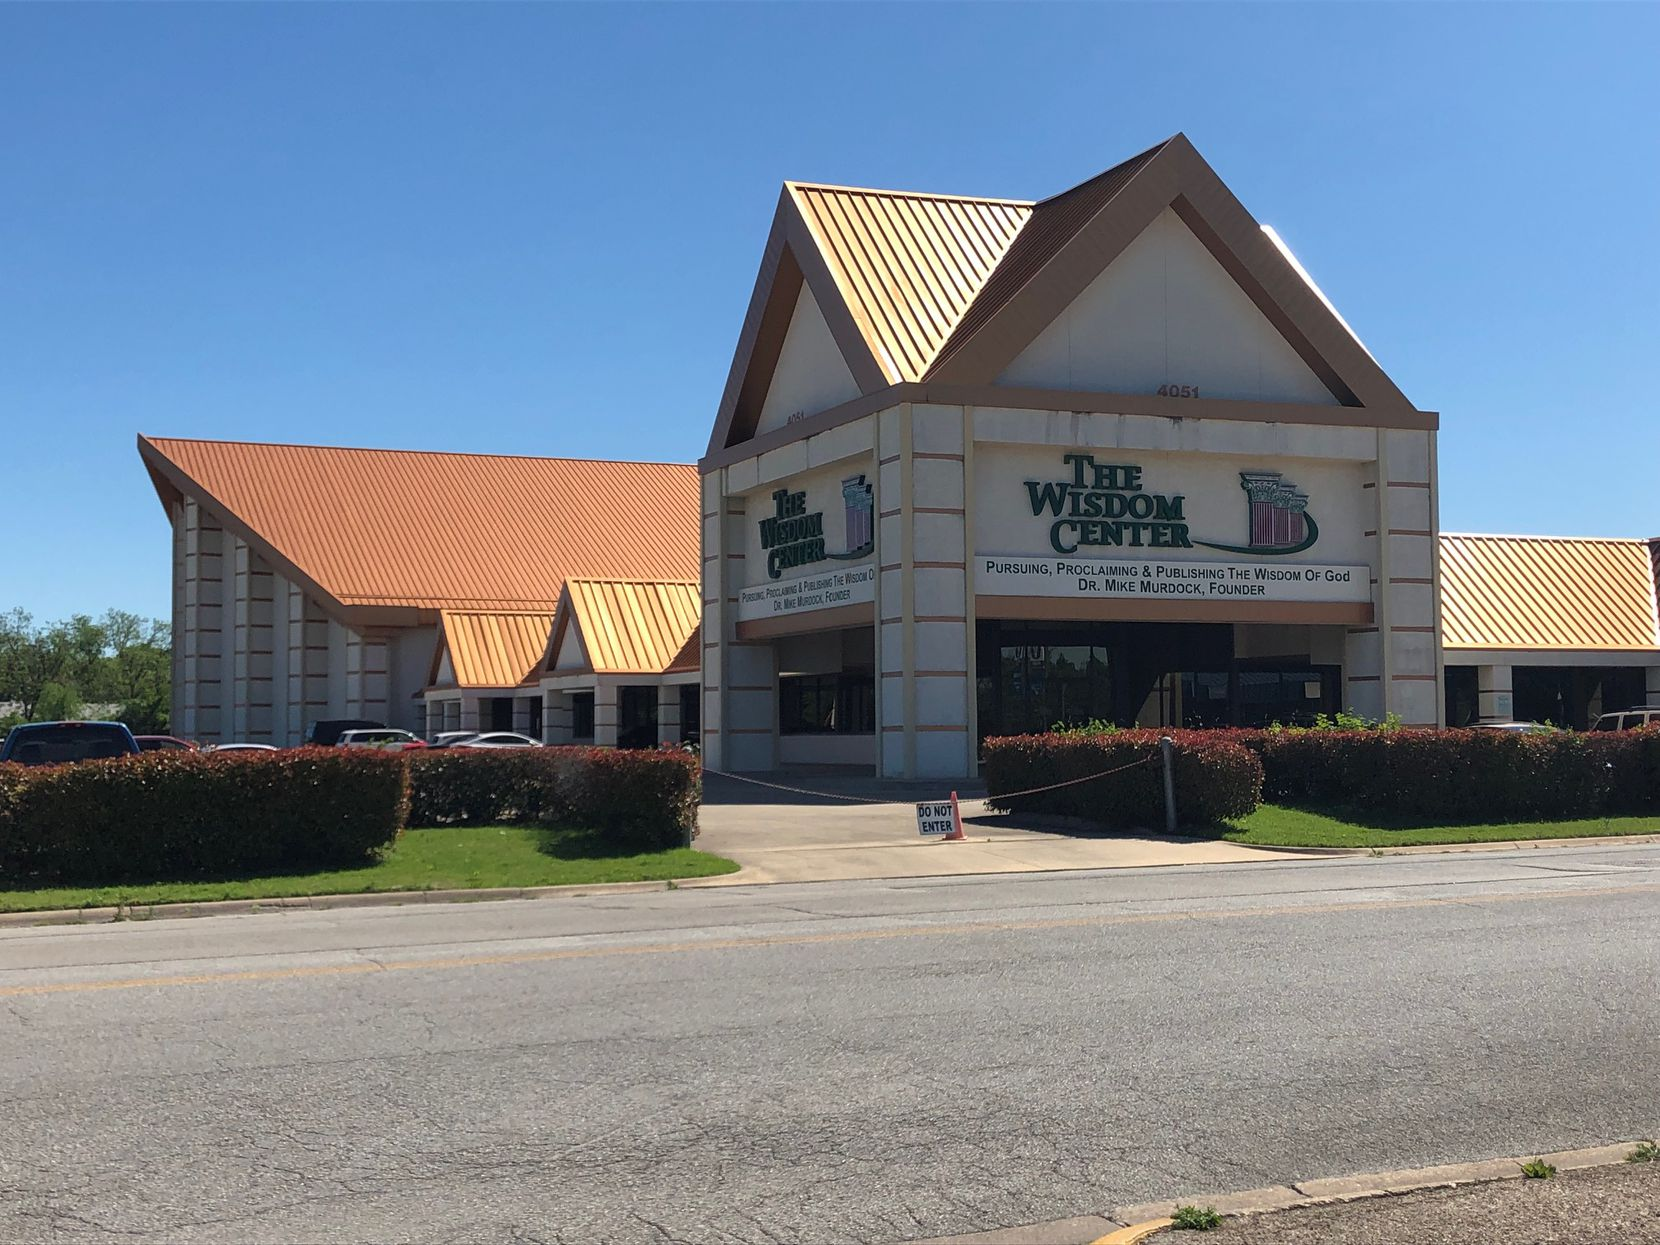 The Wisdom Center on Denton Highway in Haltom City is Mike Murdock's base of operations for what he describes as his worldwide ministry. The complex is 135,000 square feet, he says.